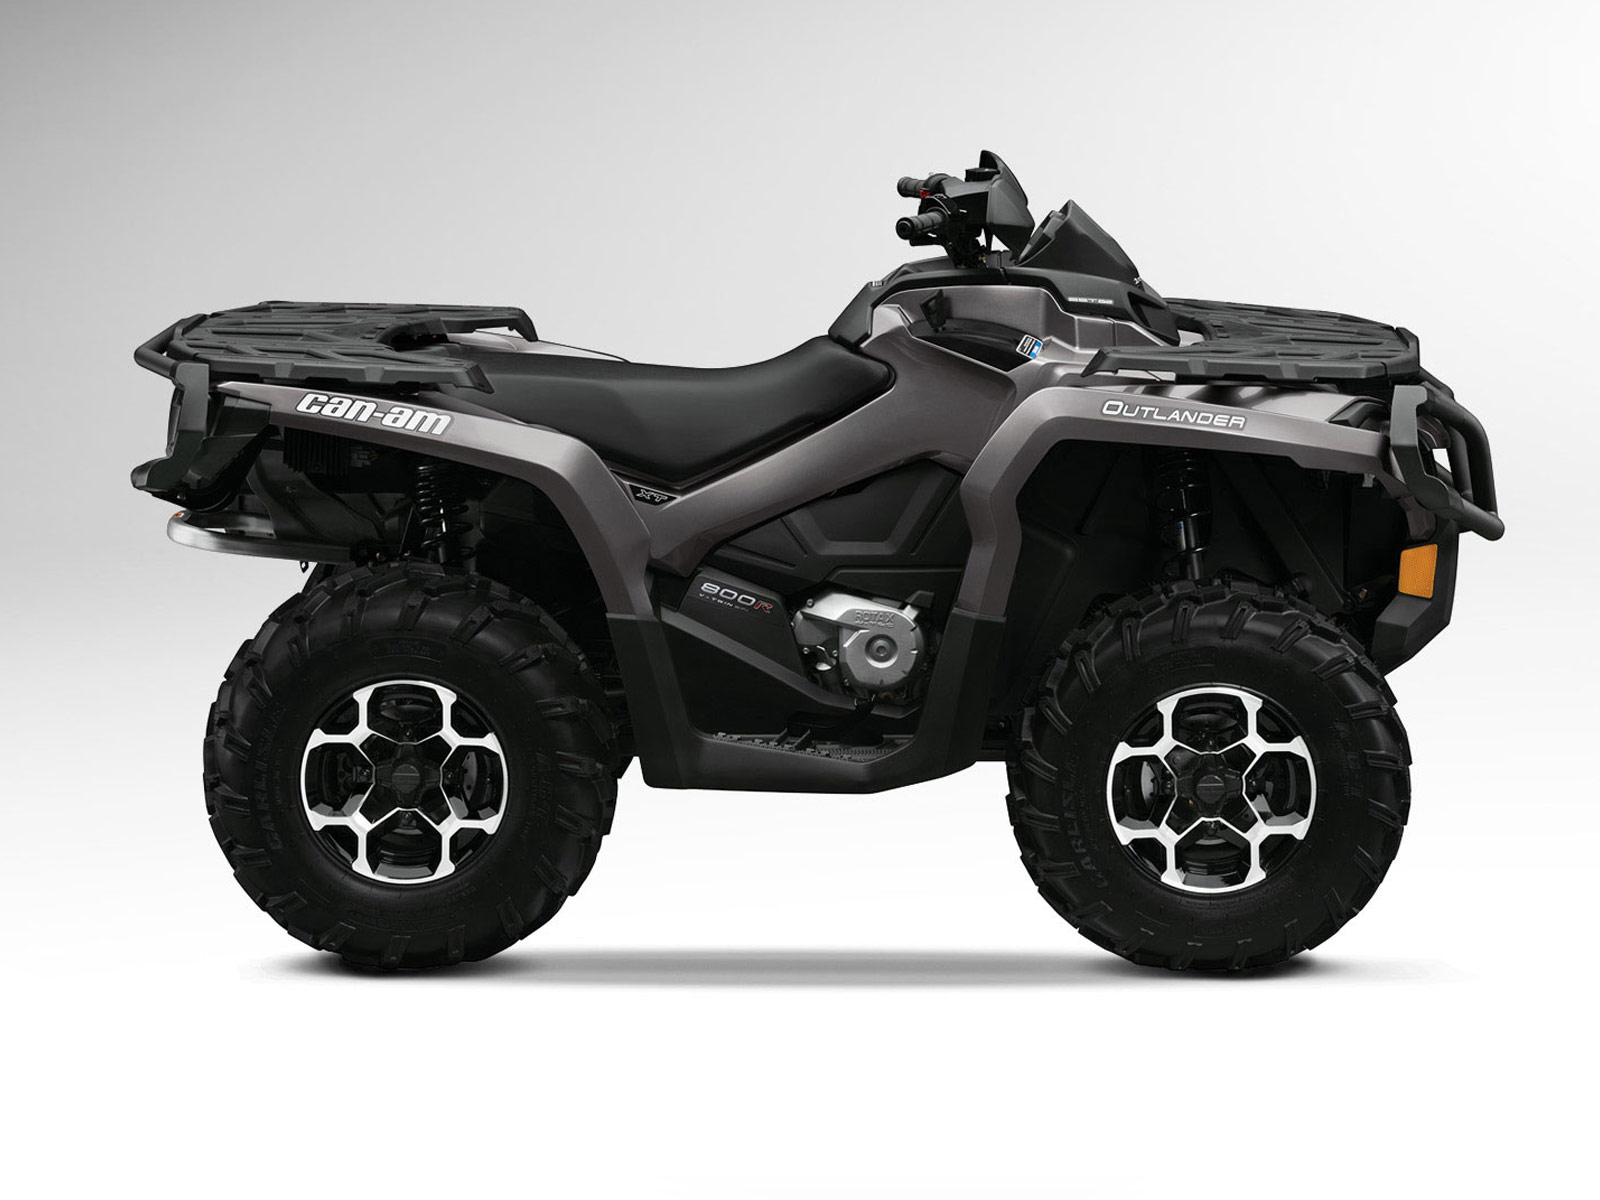 2012 Can-Am Outlander 800R XT ATV pictures, specifications